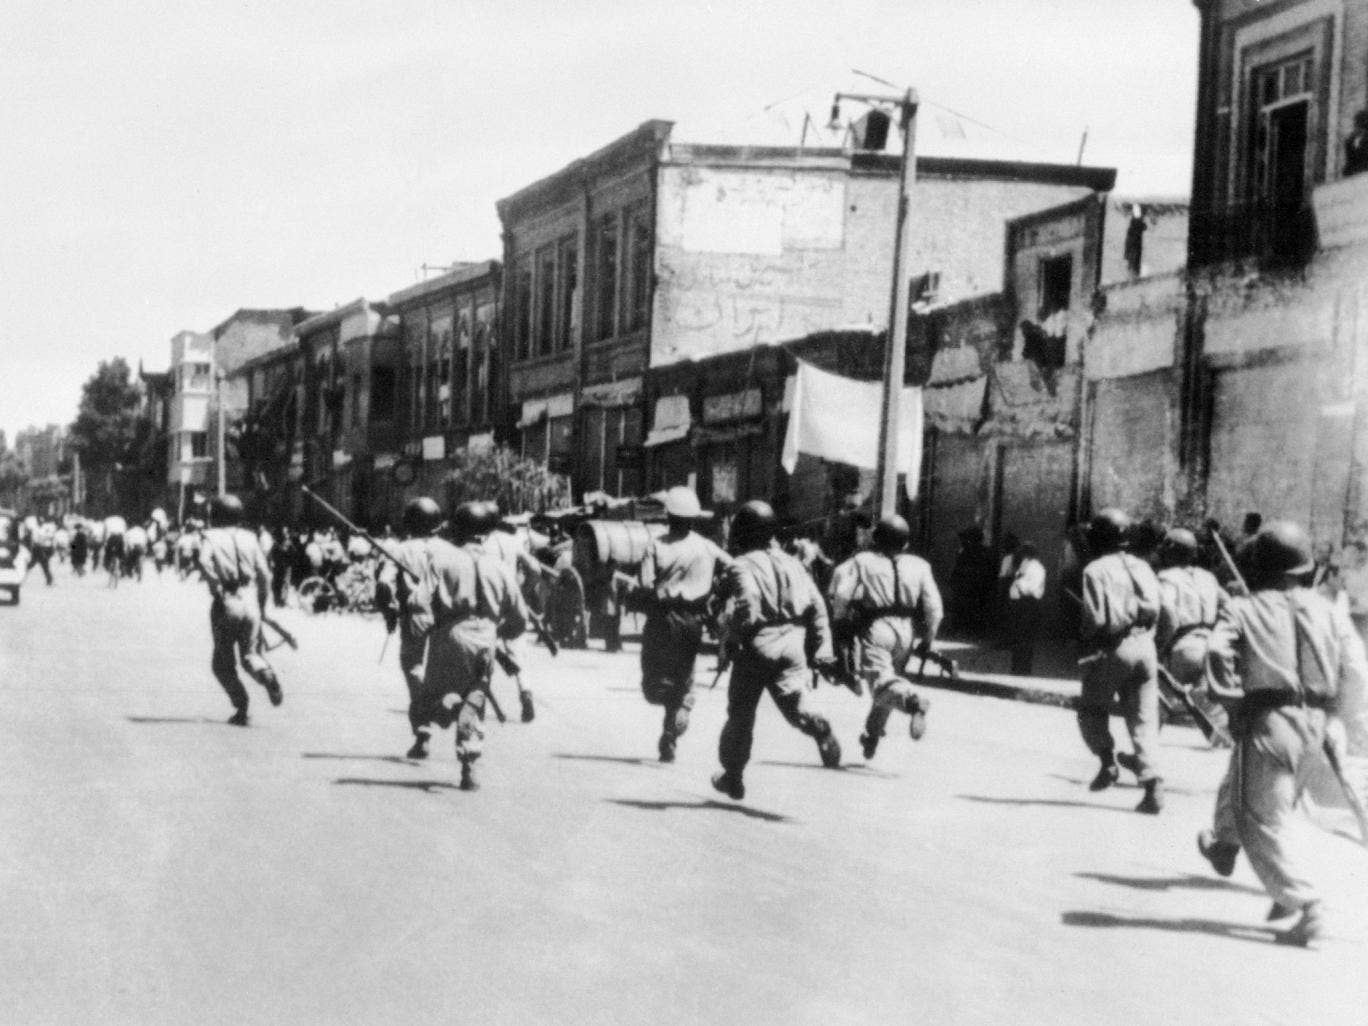 Persian soldiers chase rioters during civil unrest in Tehran, August 1953